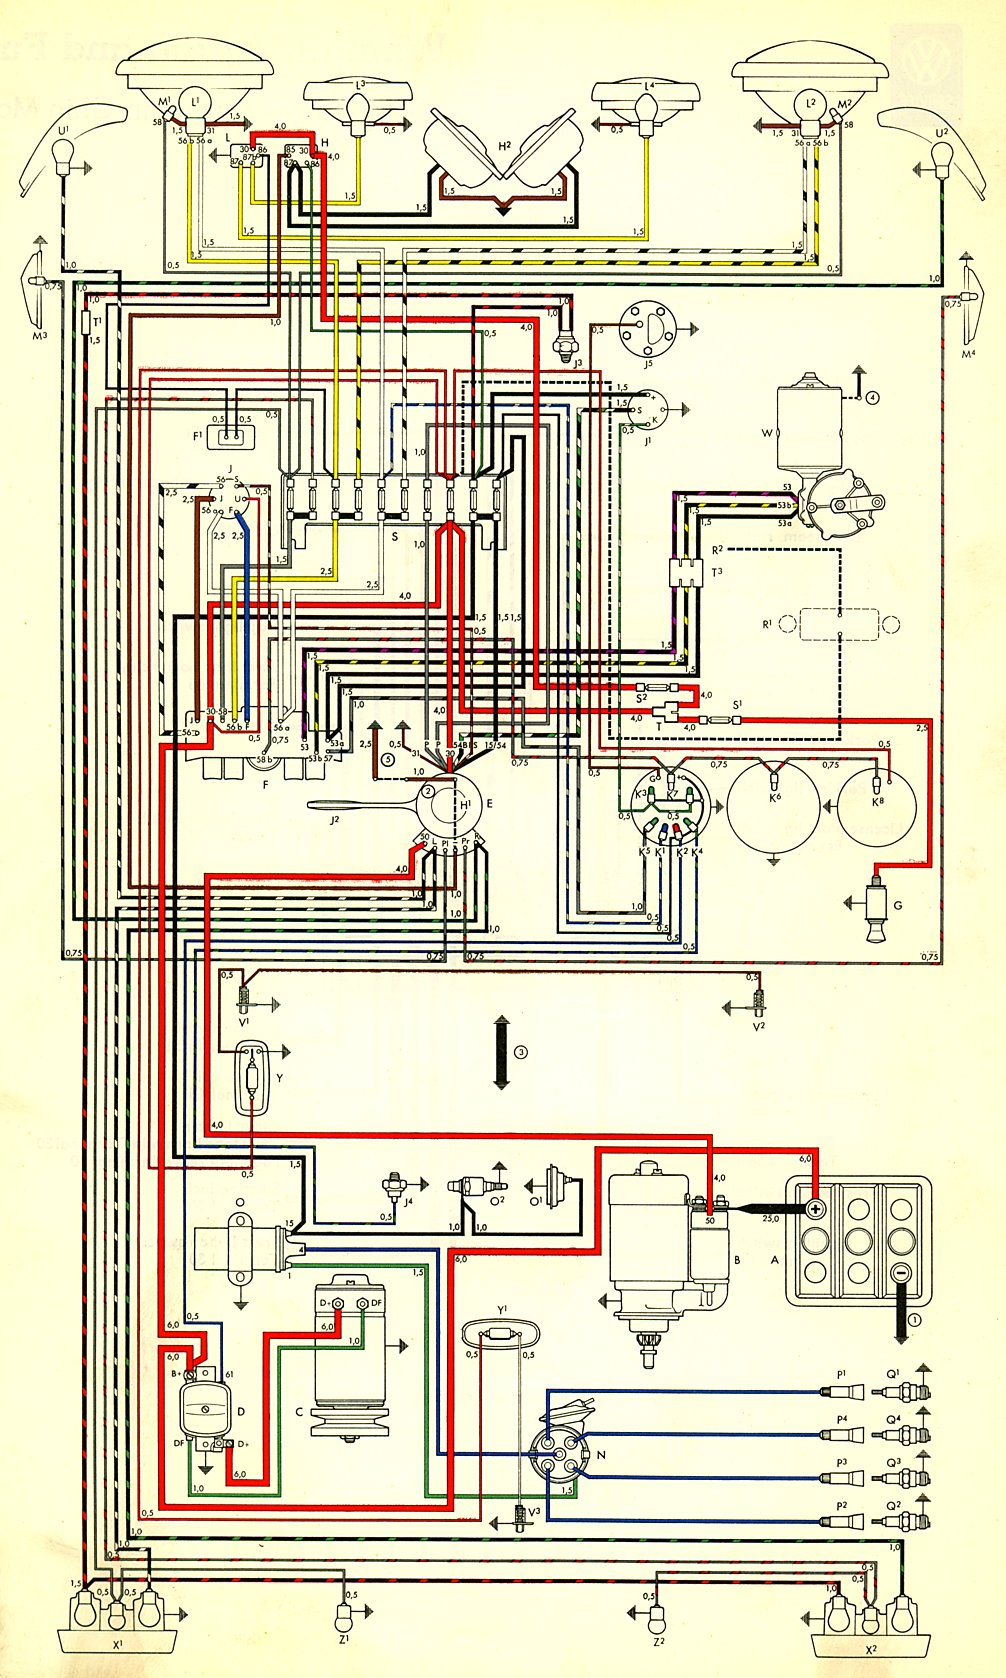 Diagram  Motor Wiring Diagrams Wiring Diagram Full Version Hd Quality Wiring Diagram